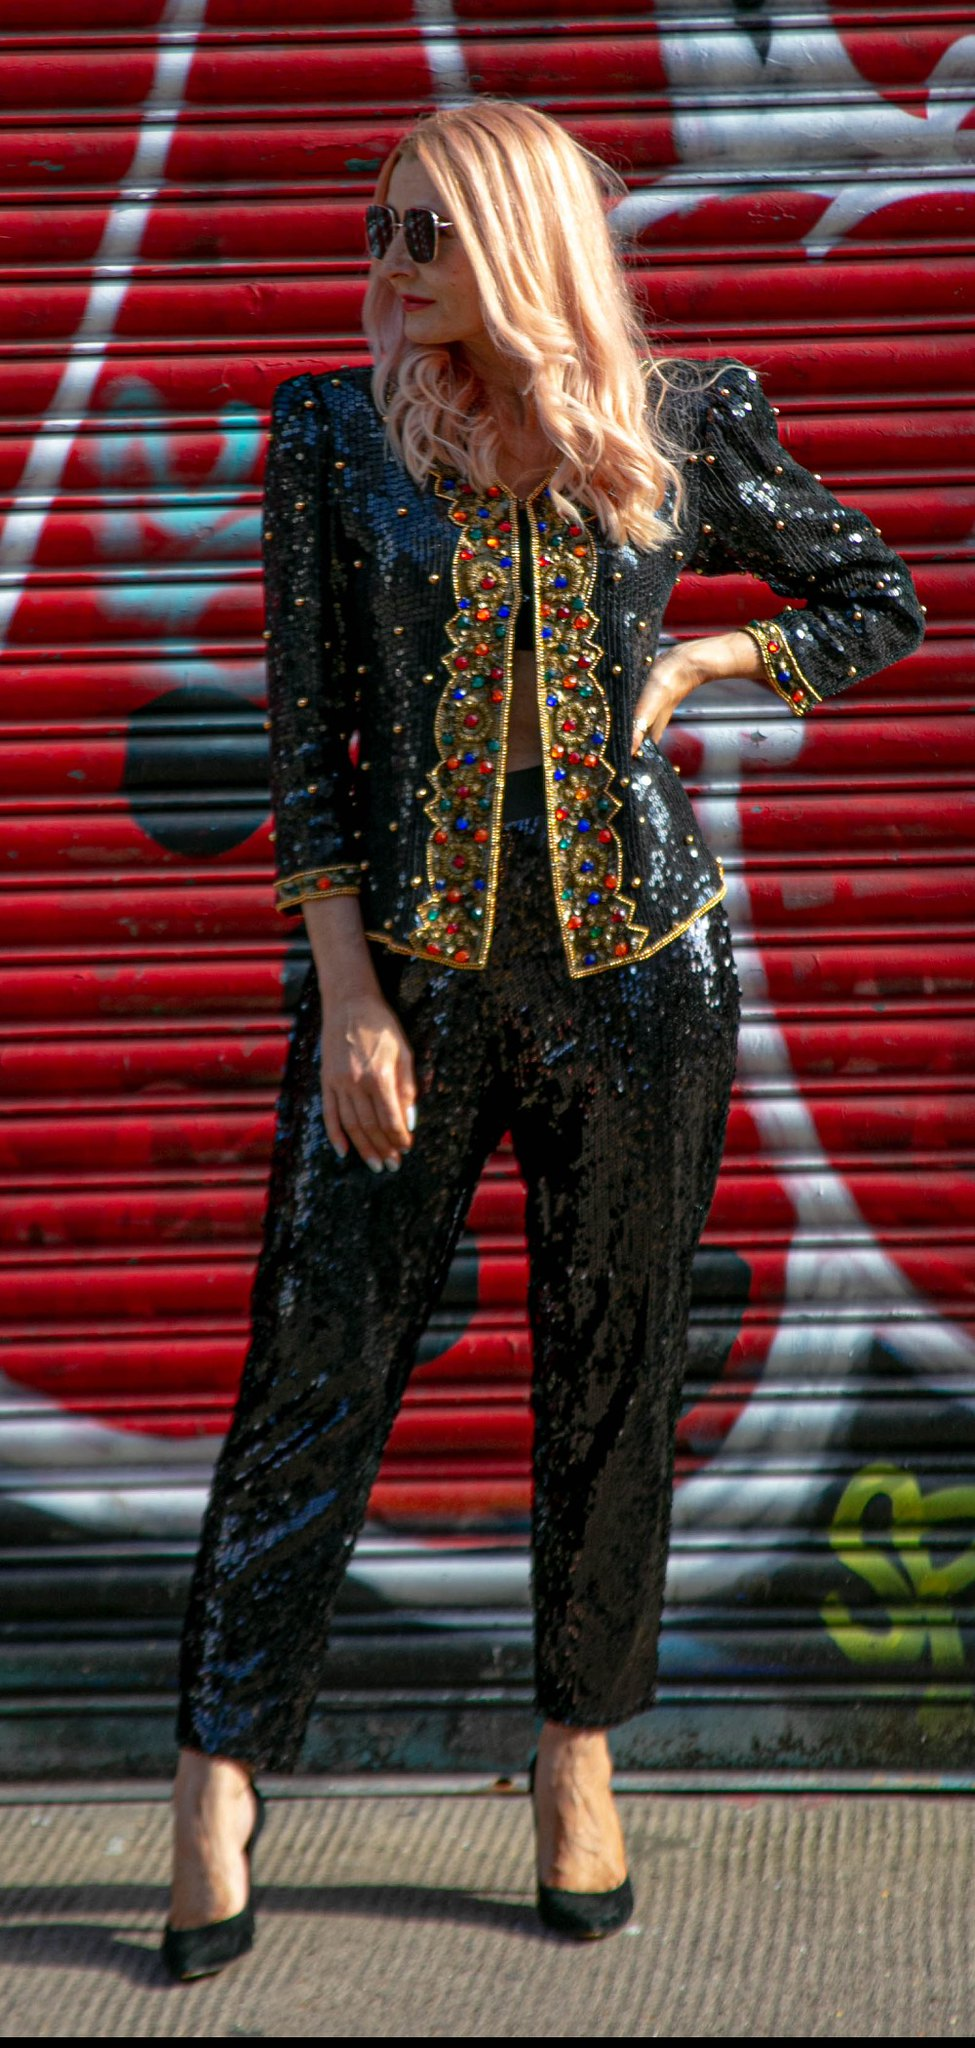 Evening wear: Vintage 1980s black sequinned and beaded jacket, baggy black sequinned trousers, black heels | Catherine Summers, Not Dressed As Lamb | Over 40 Style